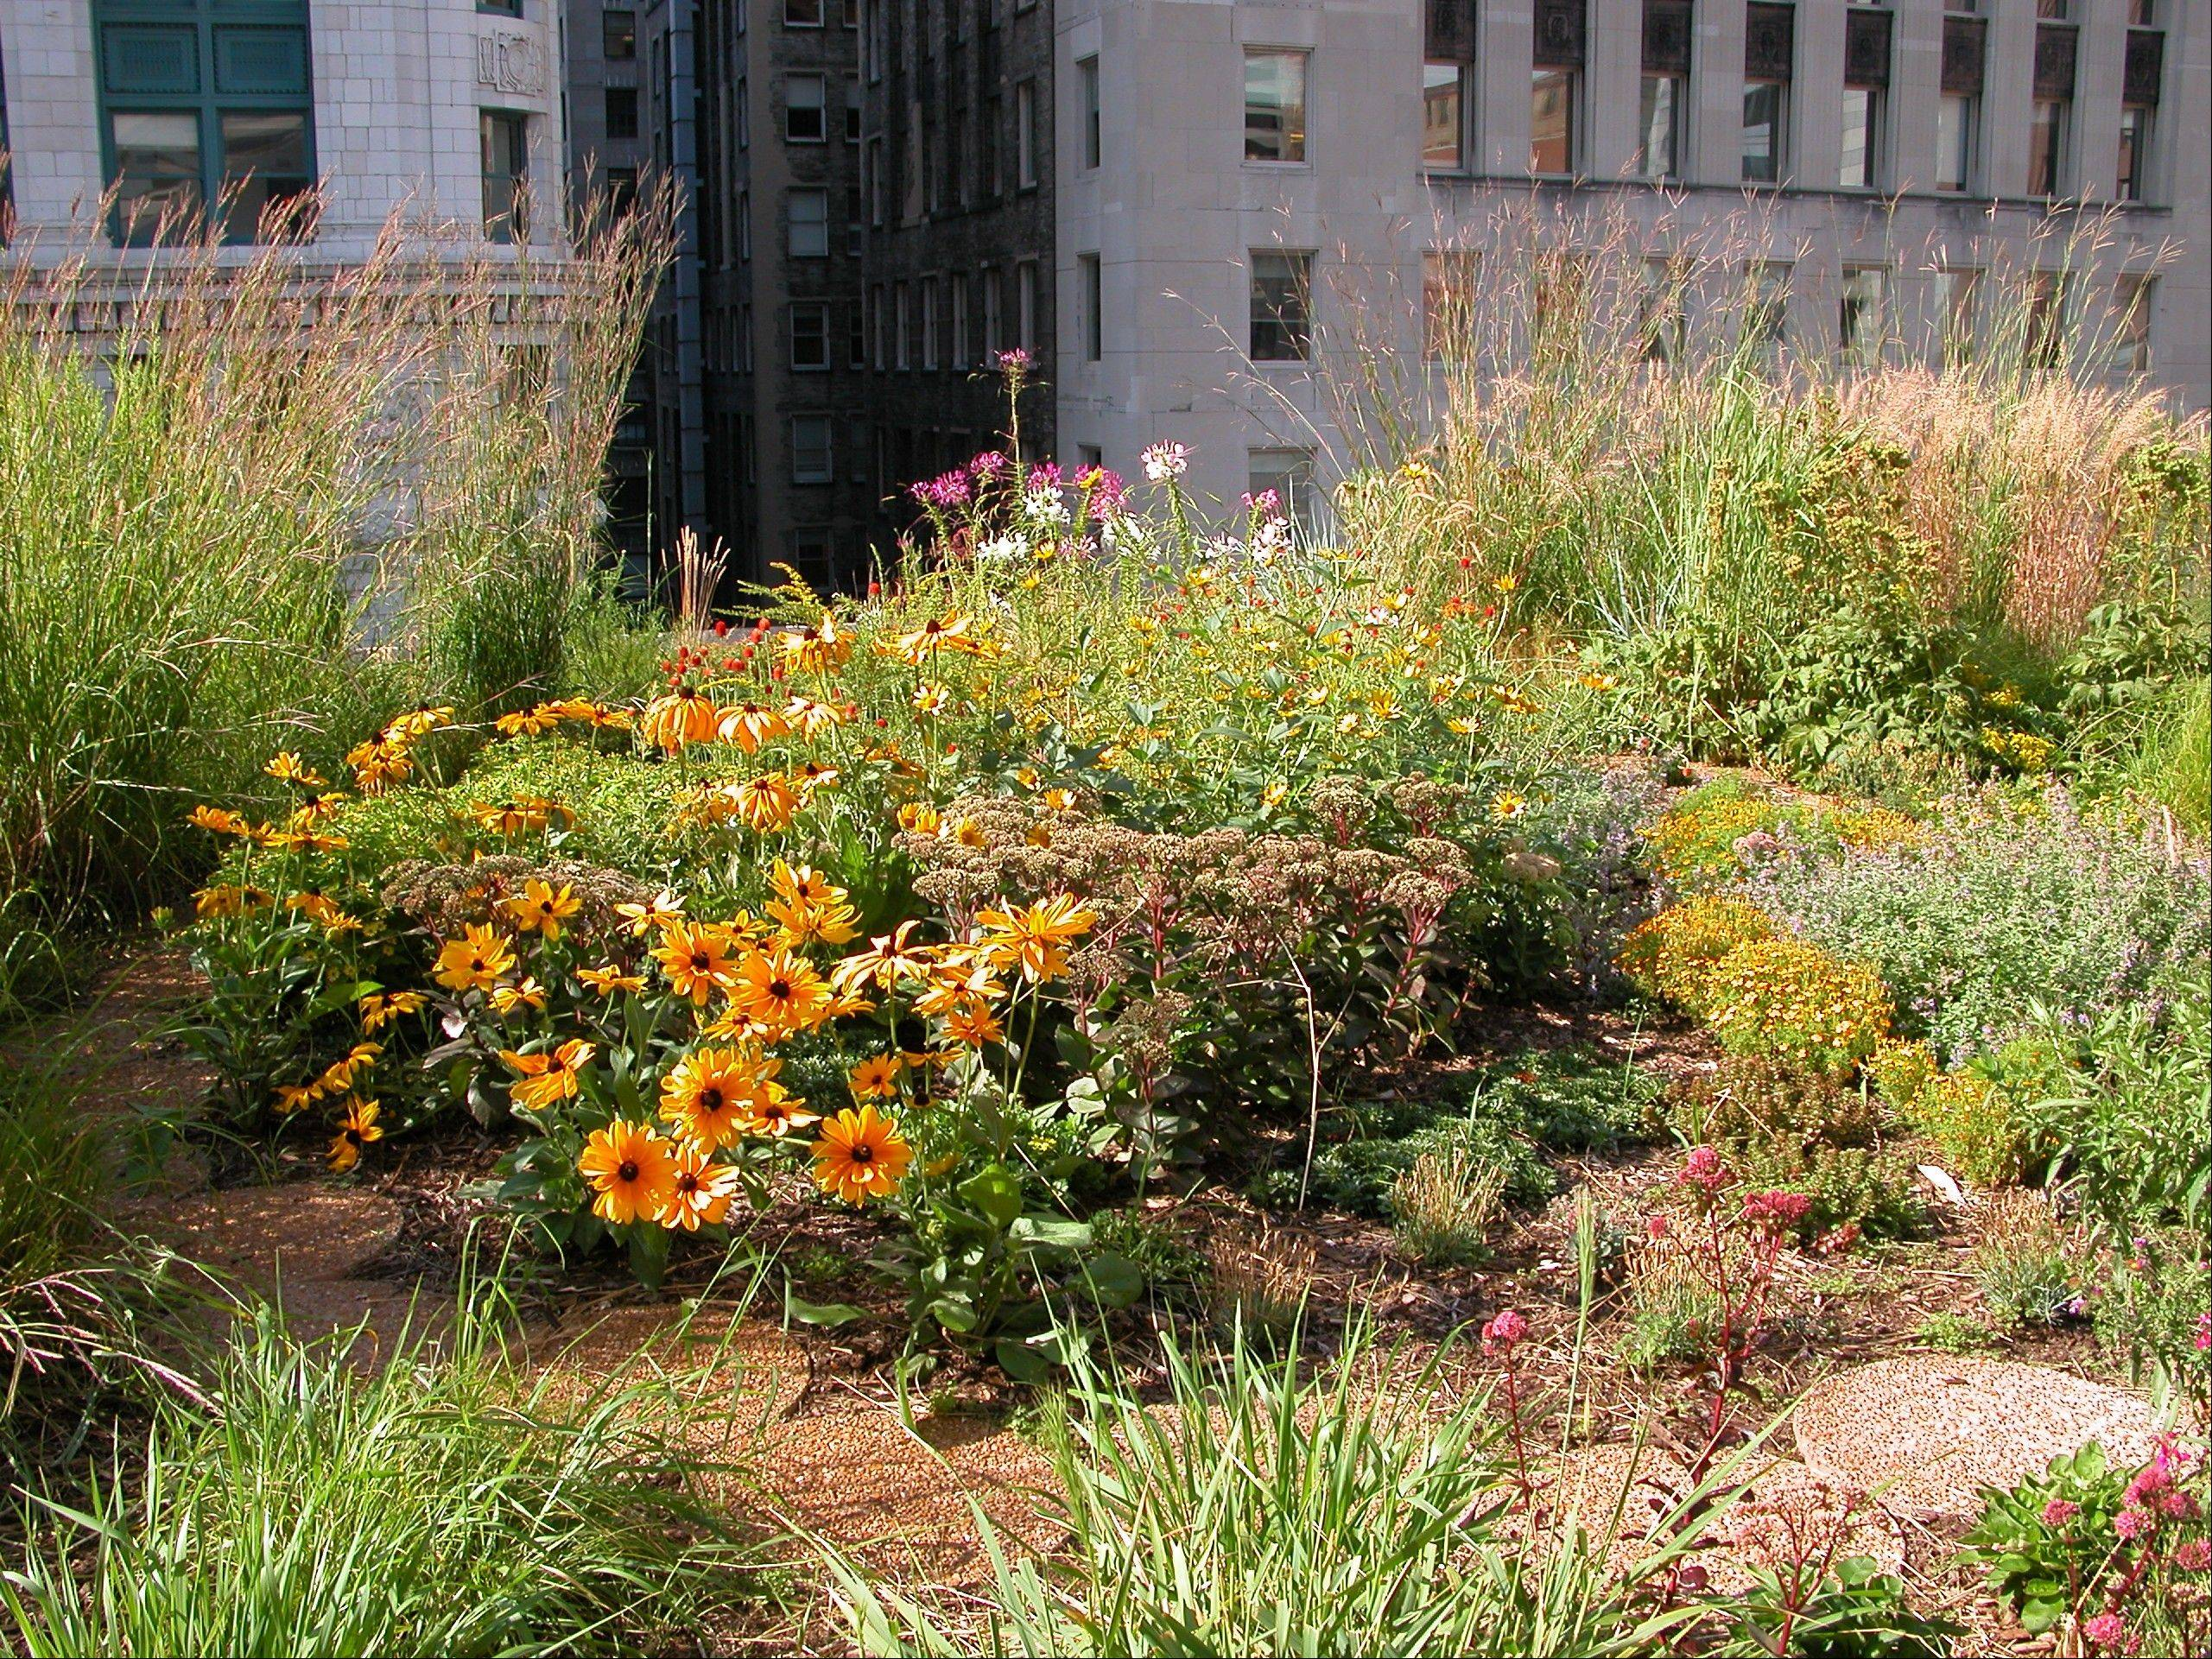 Landscaping on rooftops, such as the Chicago City Hall roof here, is one way to create a �greener� environment.